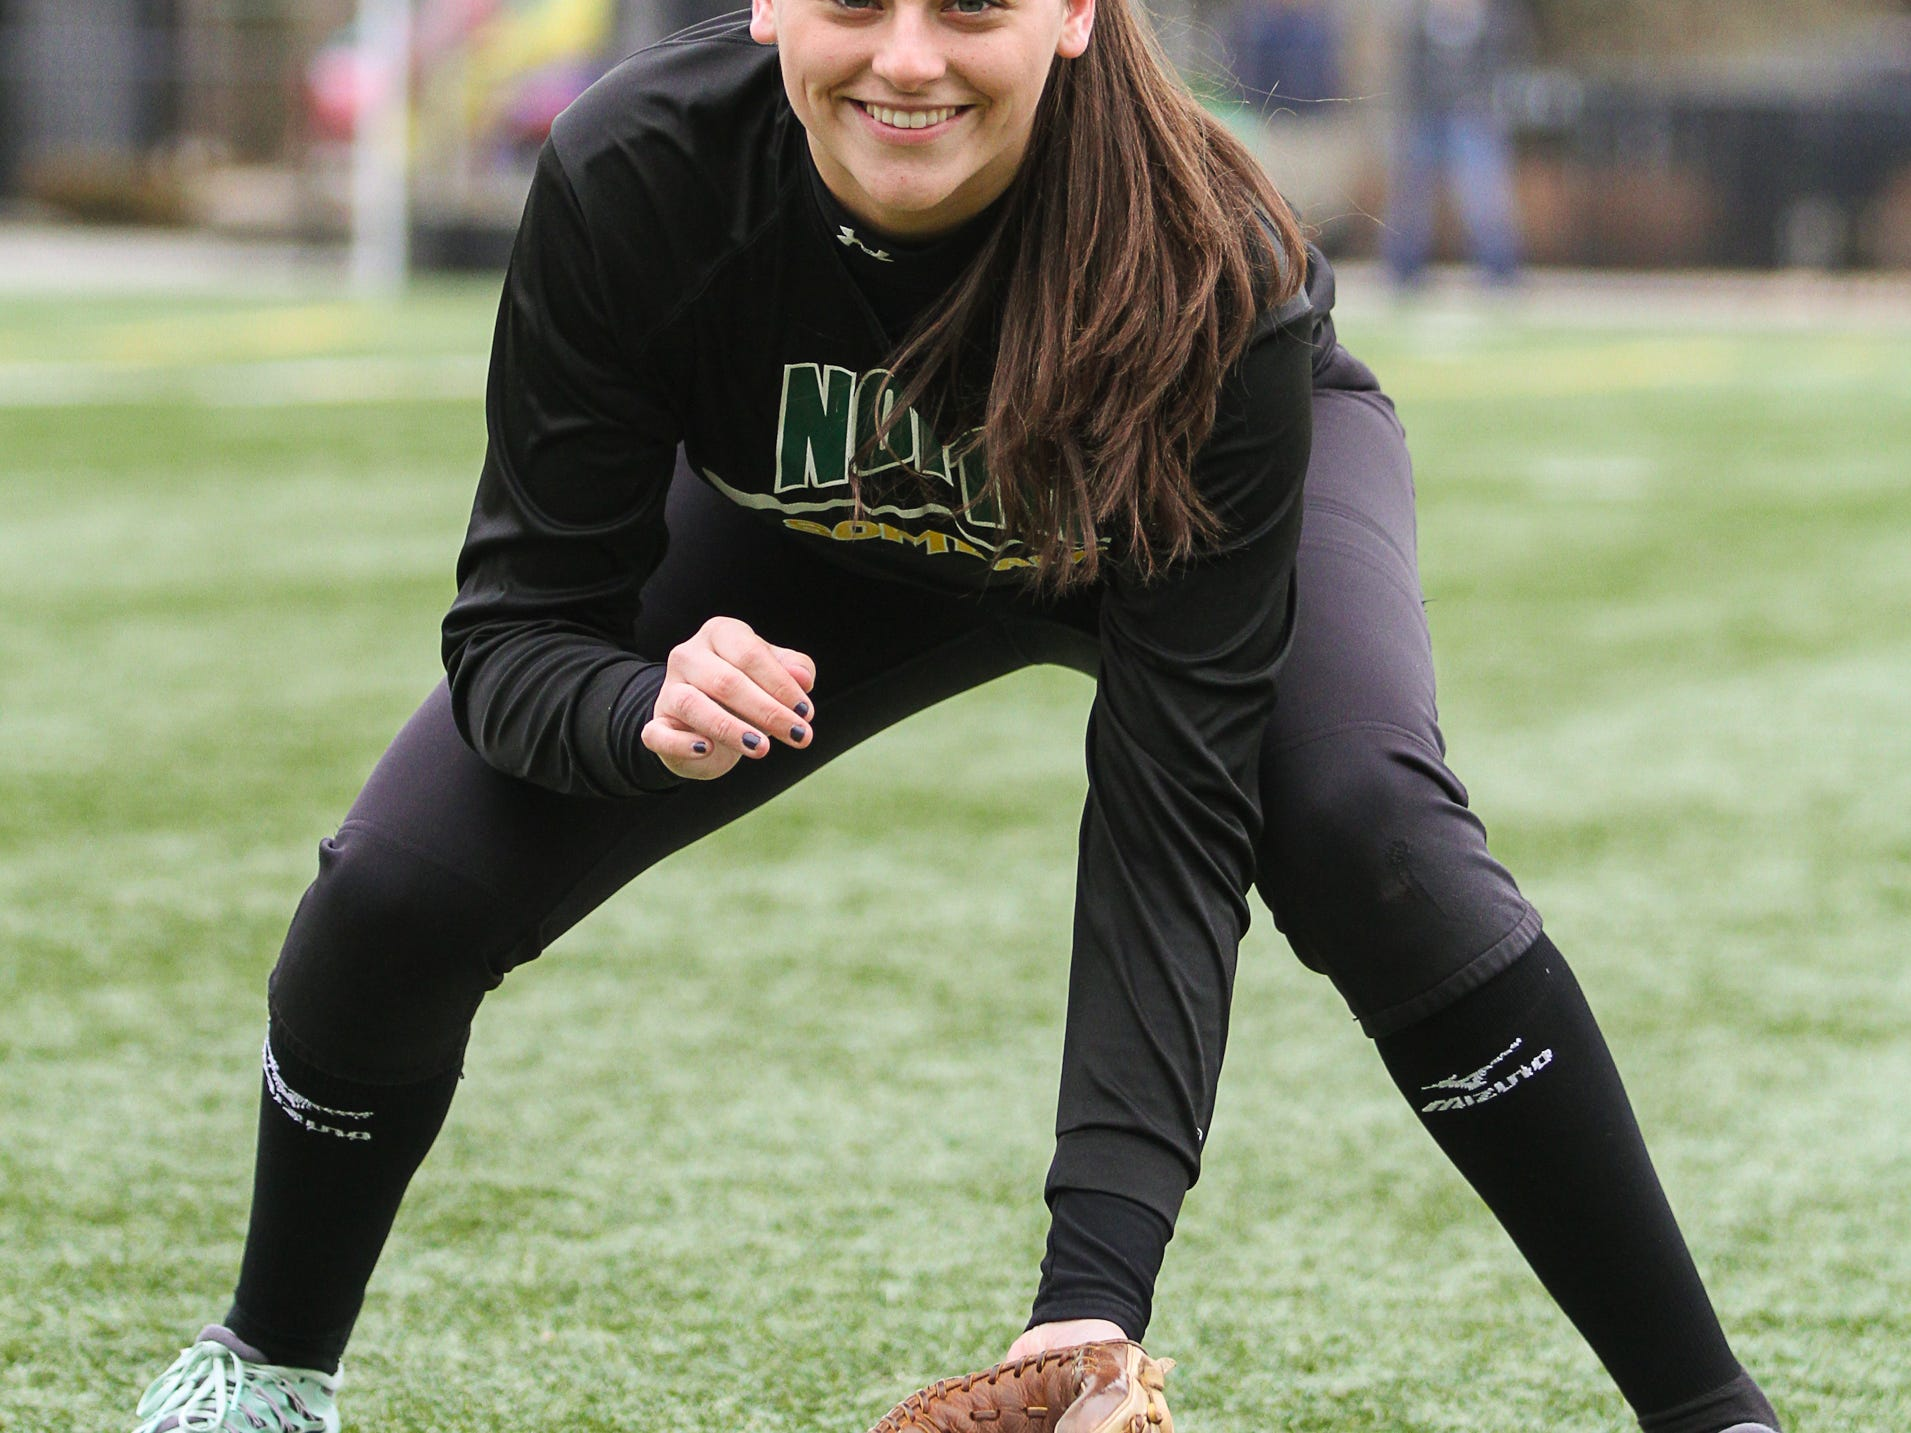 North Hunterdon senior shortstop Carly Severini is the Courier News Softball Player of the Week